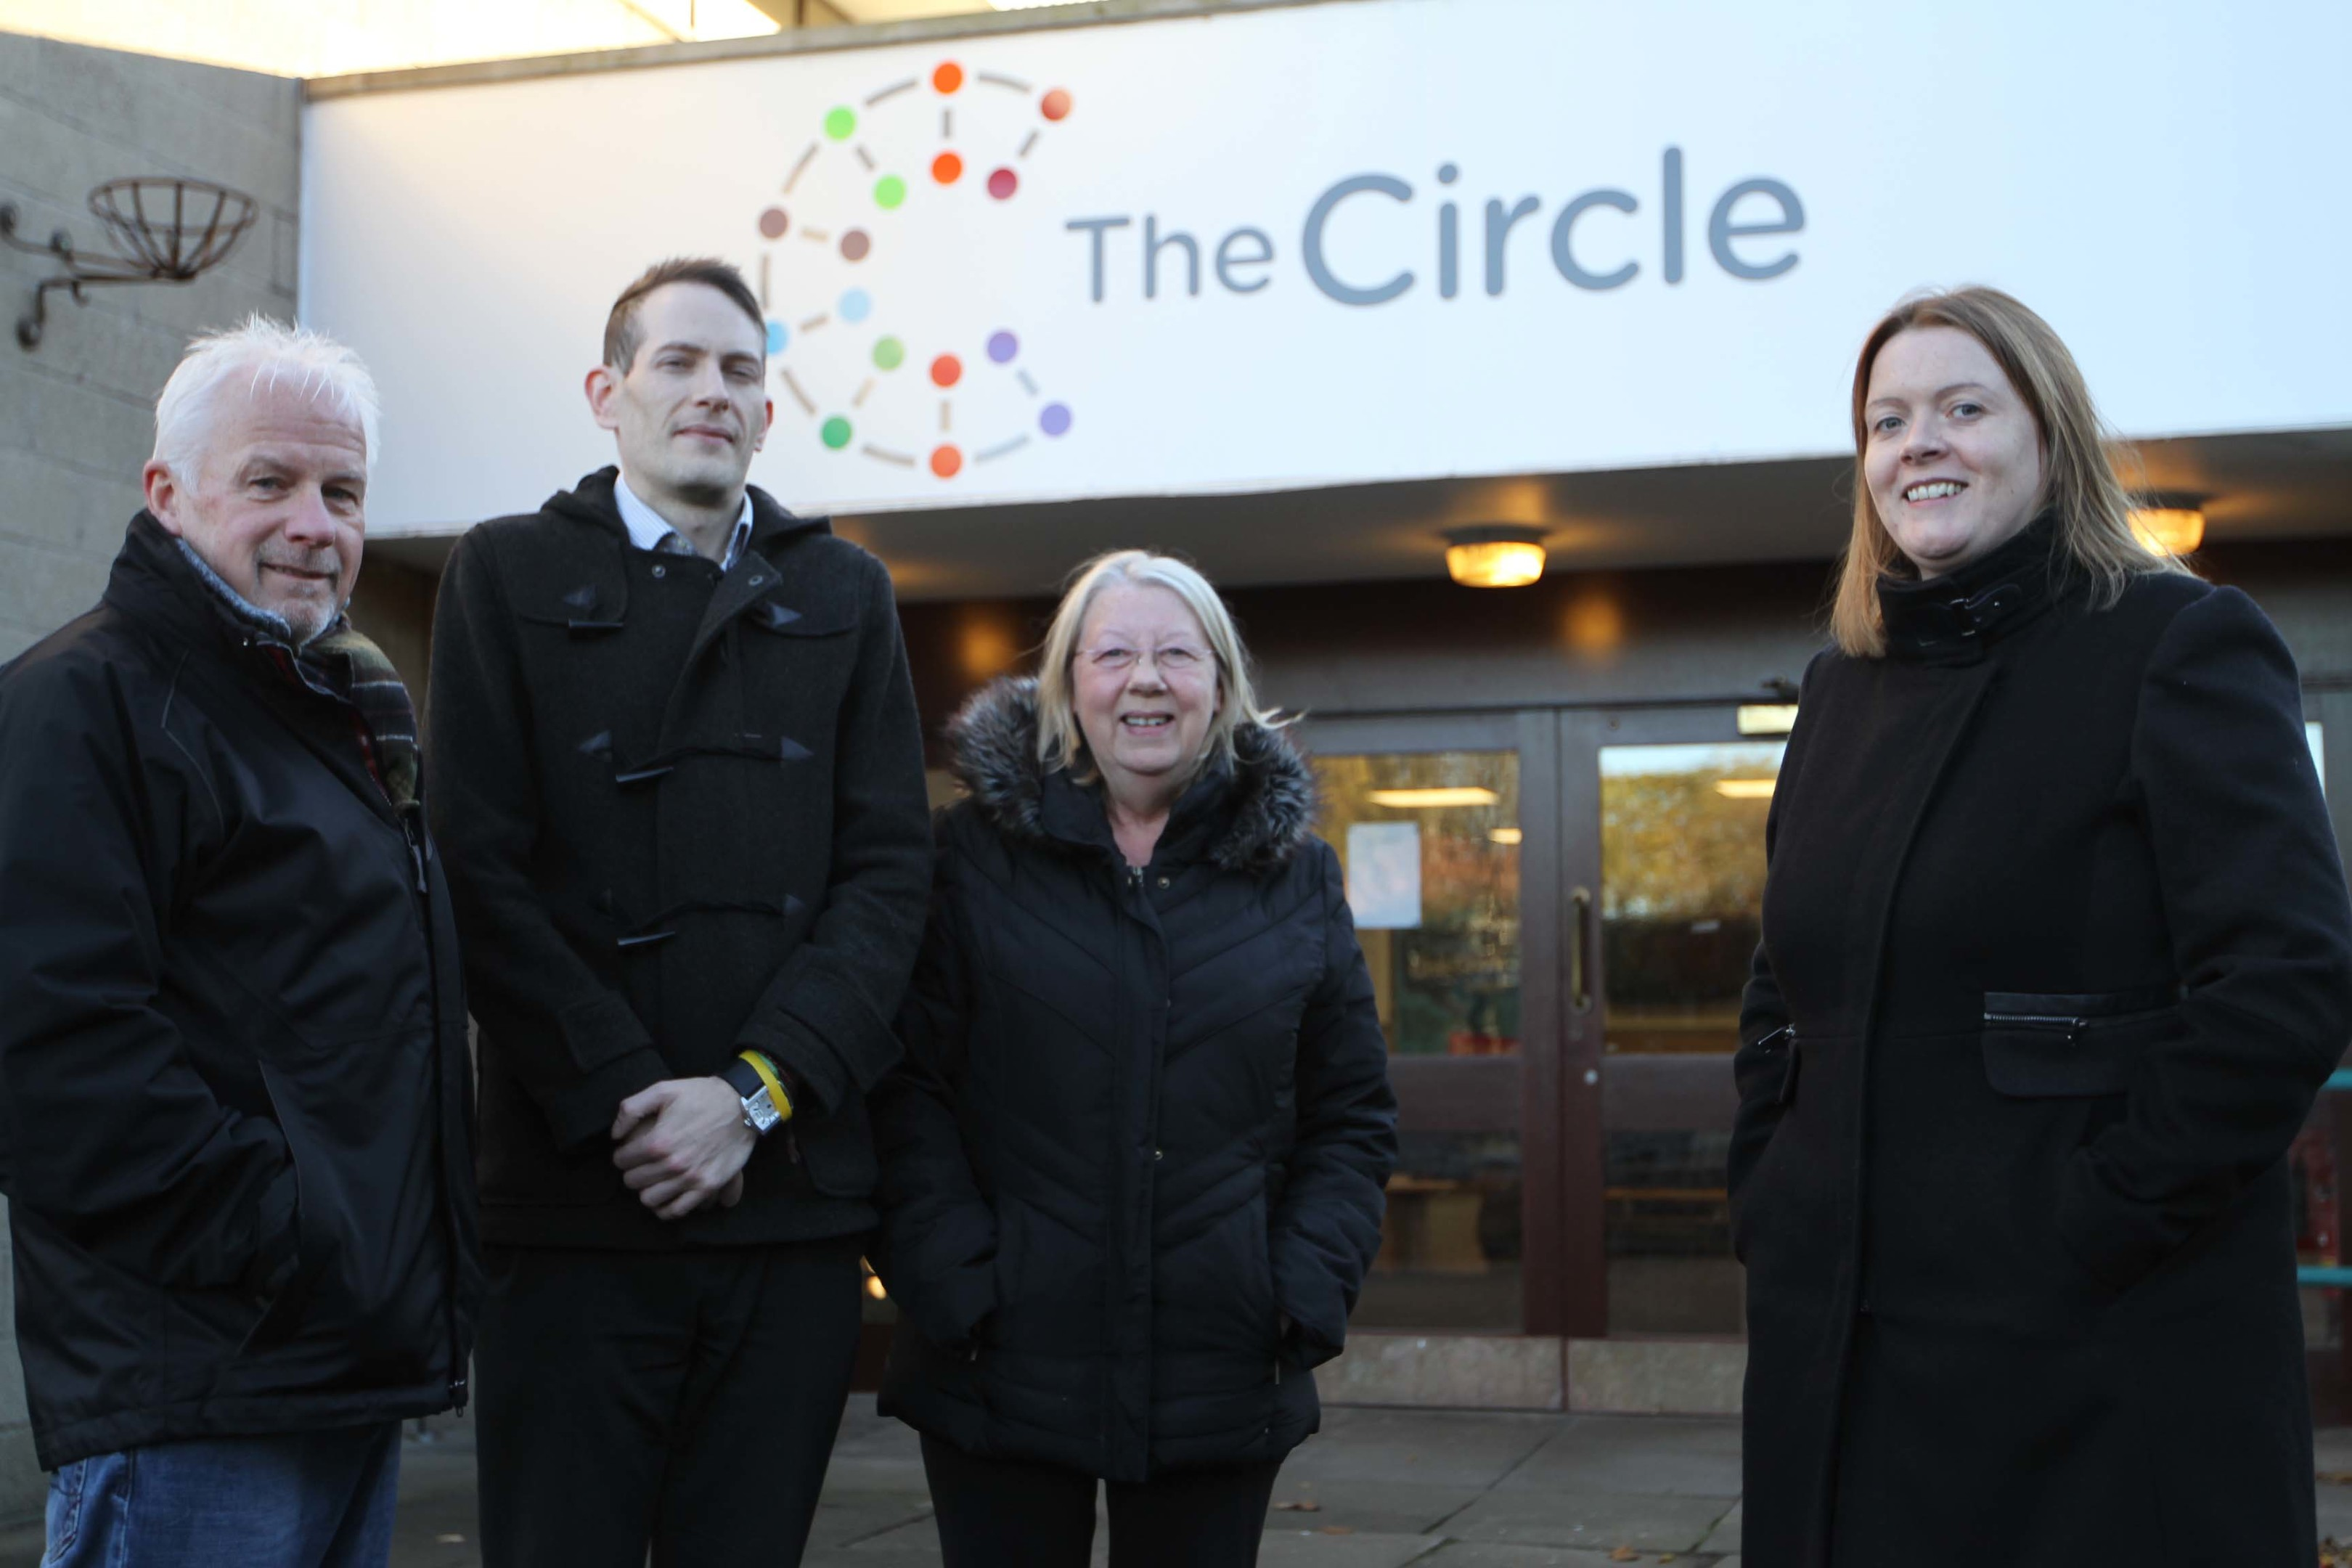 Scottish Manager of Fields in Trust Colin Rennie, Neil Inglis and Joan Carroll of Prestige Training and C.E.O of The Circle Kirsty Thomson.